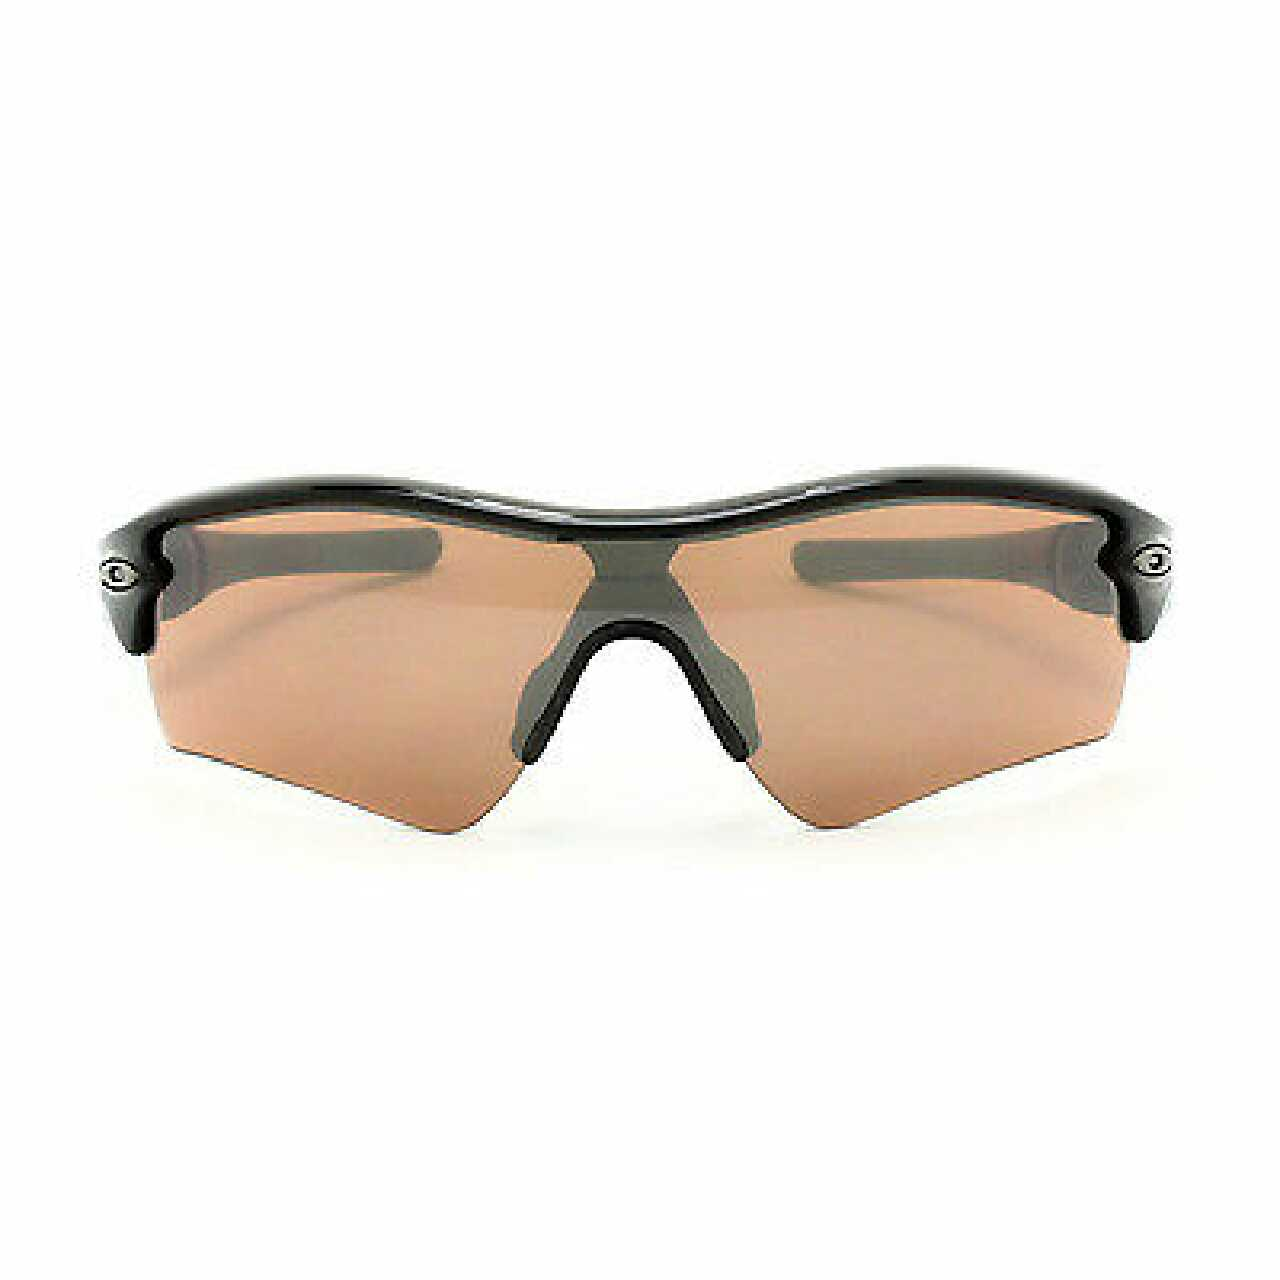 oakley sunglasses sale on facebook  tag_spam_sunglasses_facebook; oakley sunglasses for sale facebook